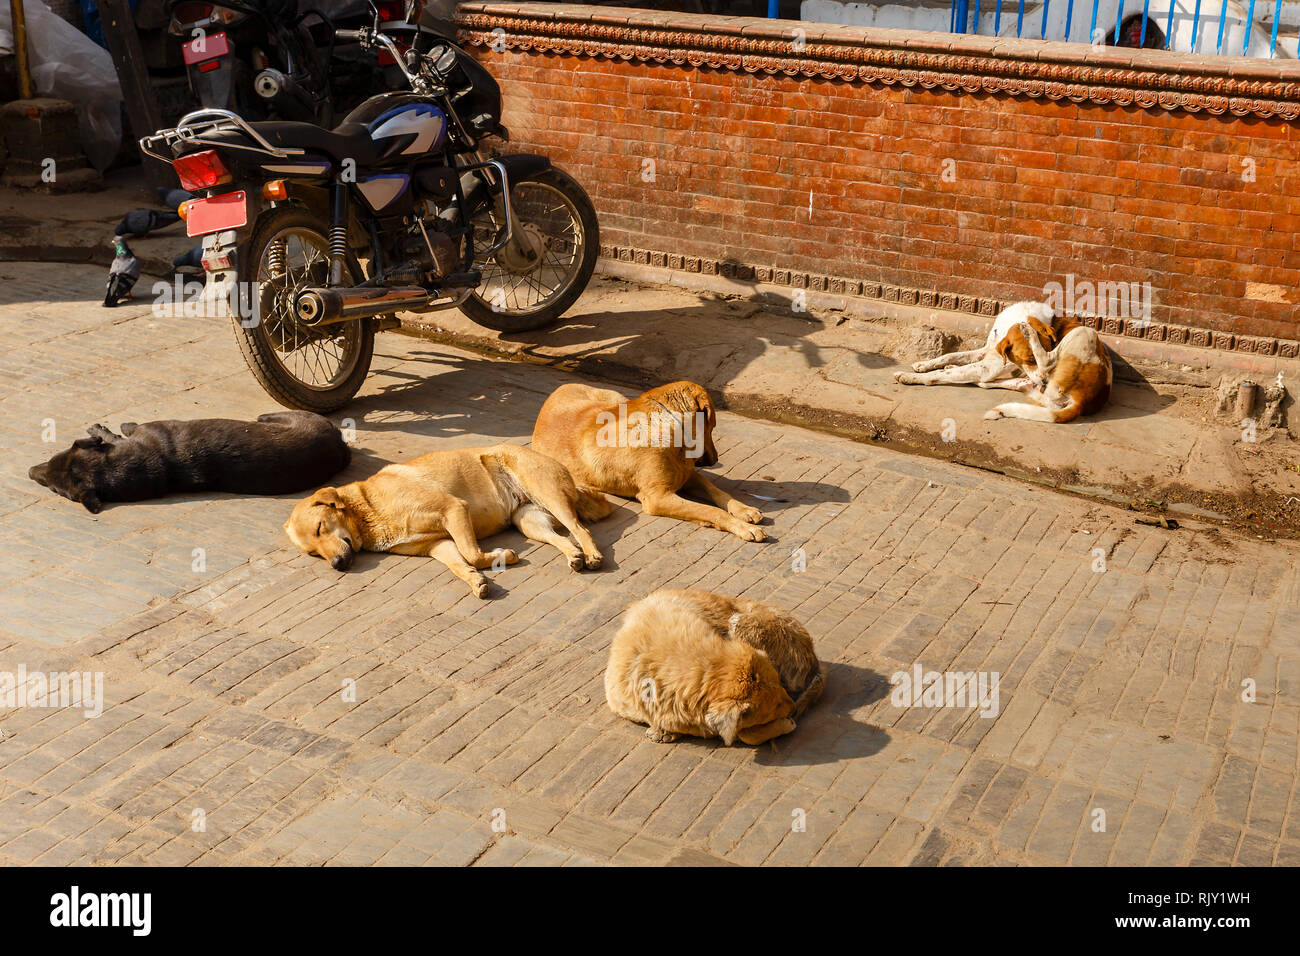 dogs lie and bask in the sun outside, Kathmandu, Nepal - Stock Image